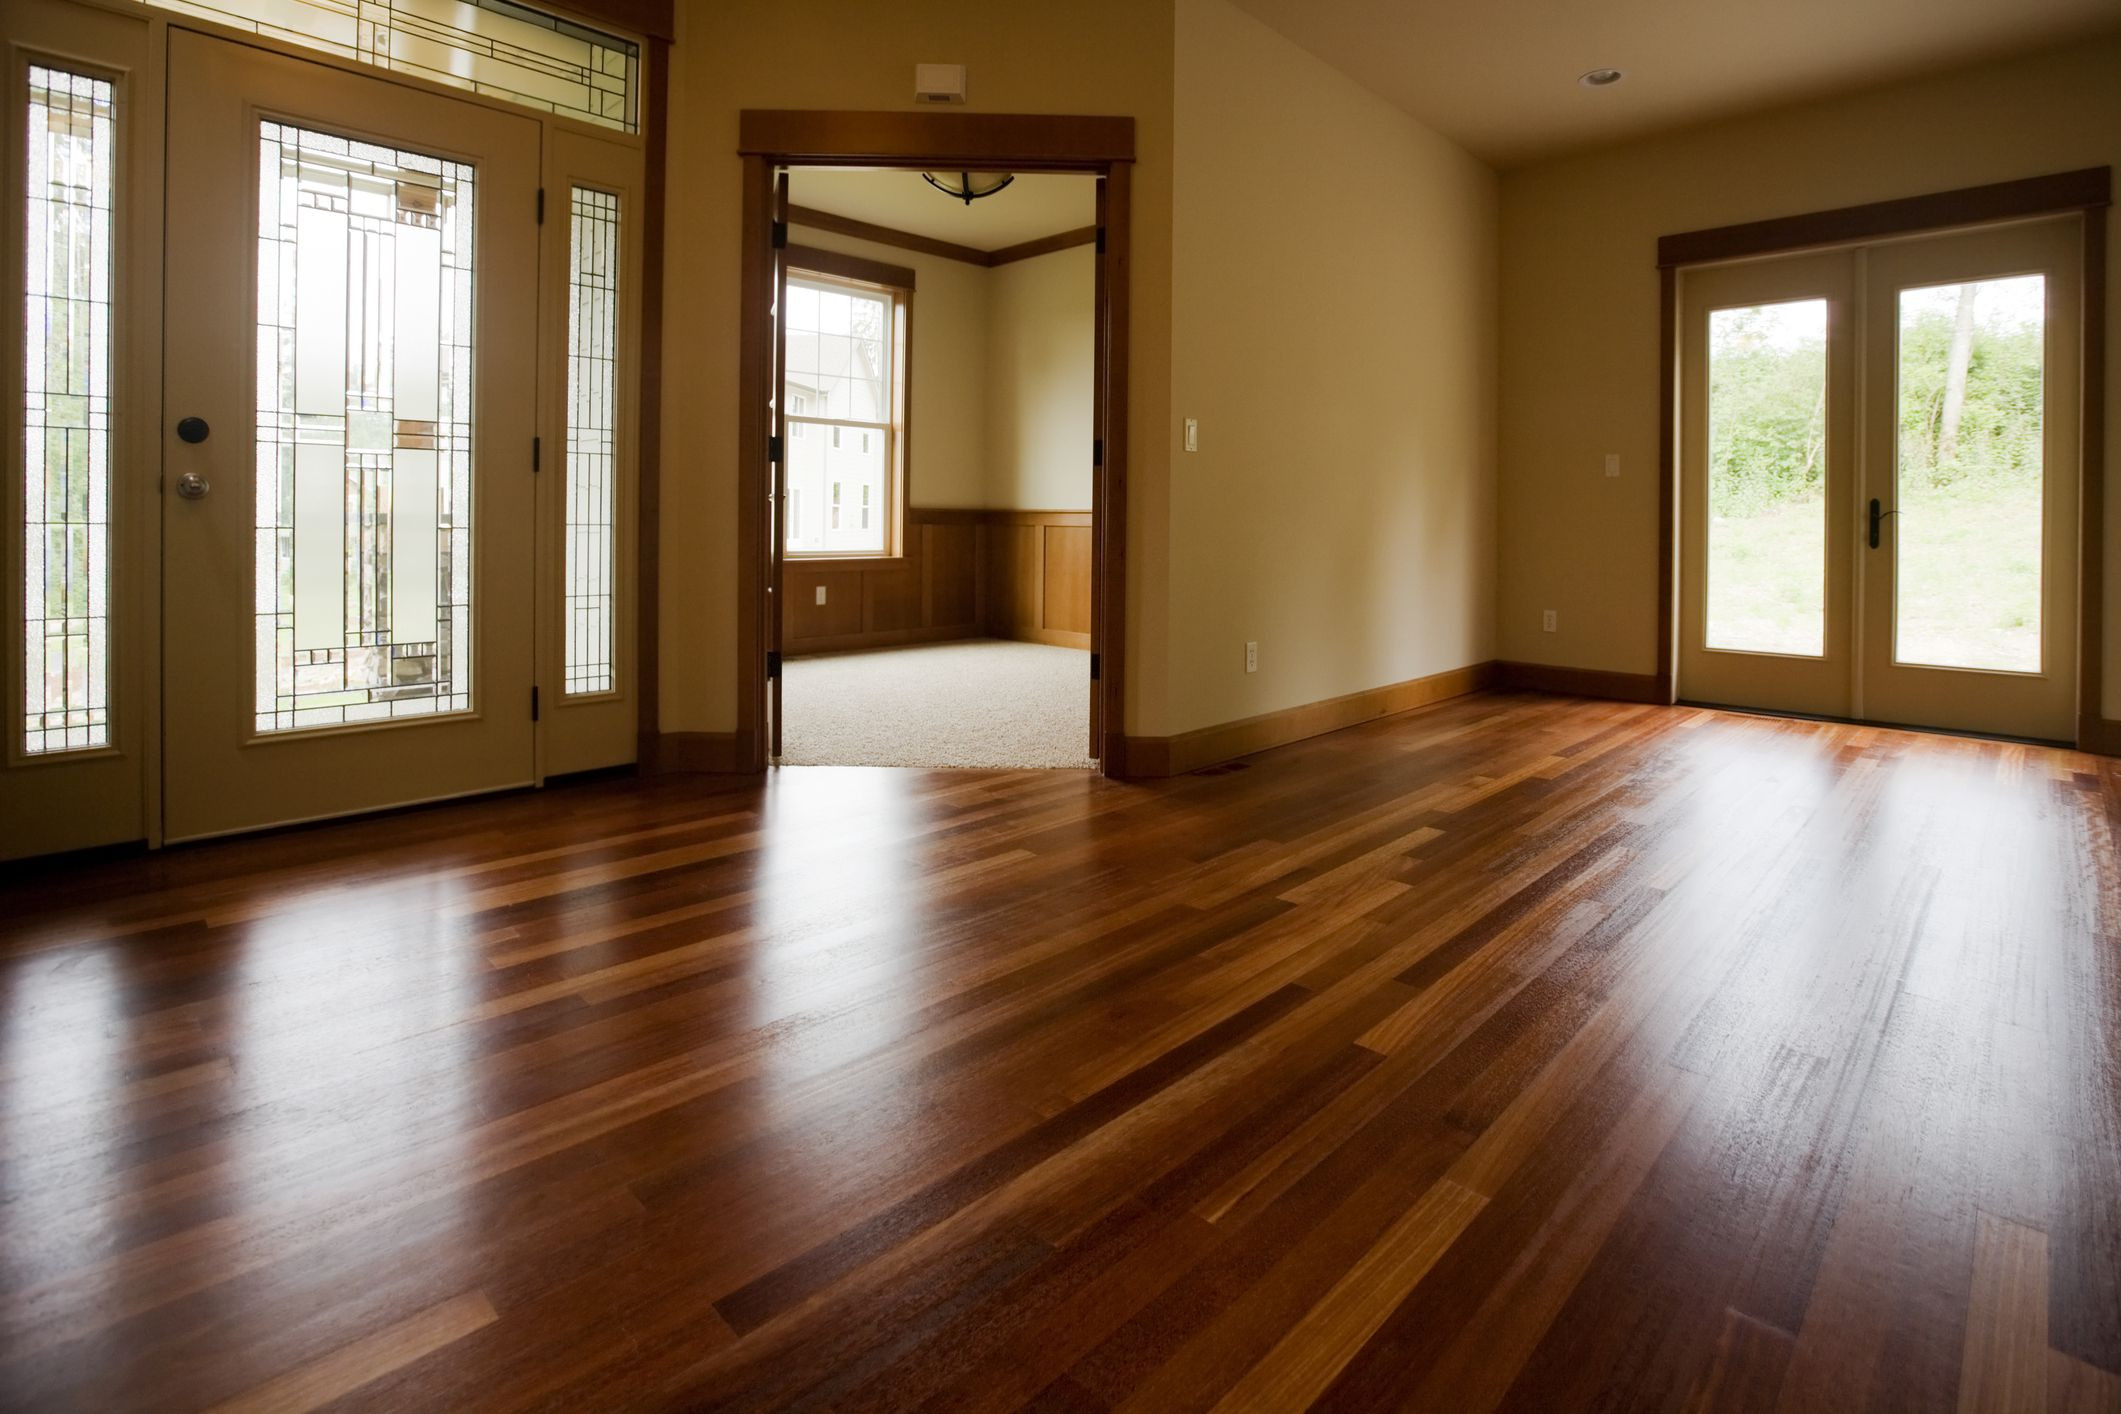 resurfacing prefinished hardwood floors of types of hardwood flooring buyers guide intended for gettyimages 157332889 5886d8383df78c2ccd65d4e1